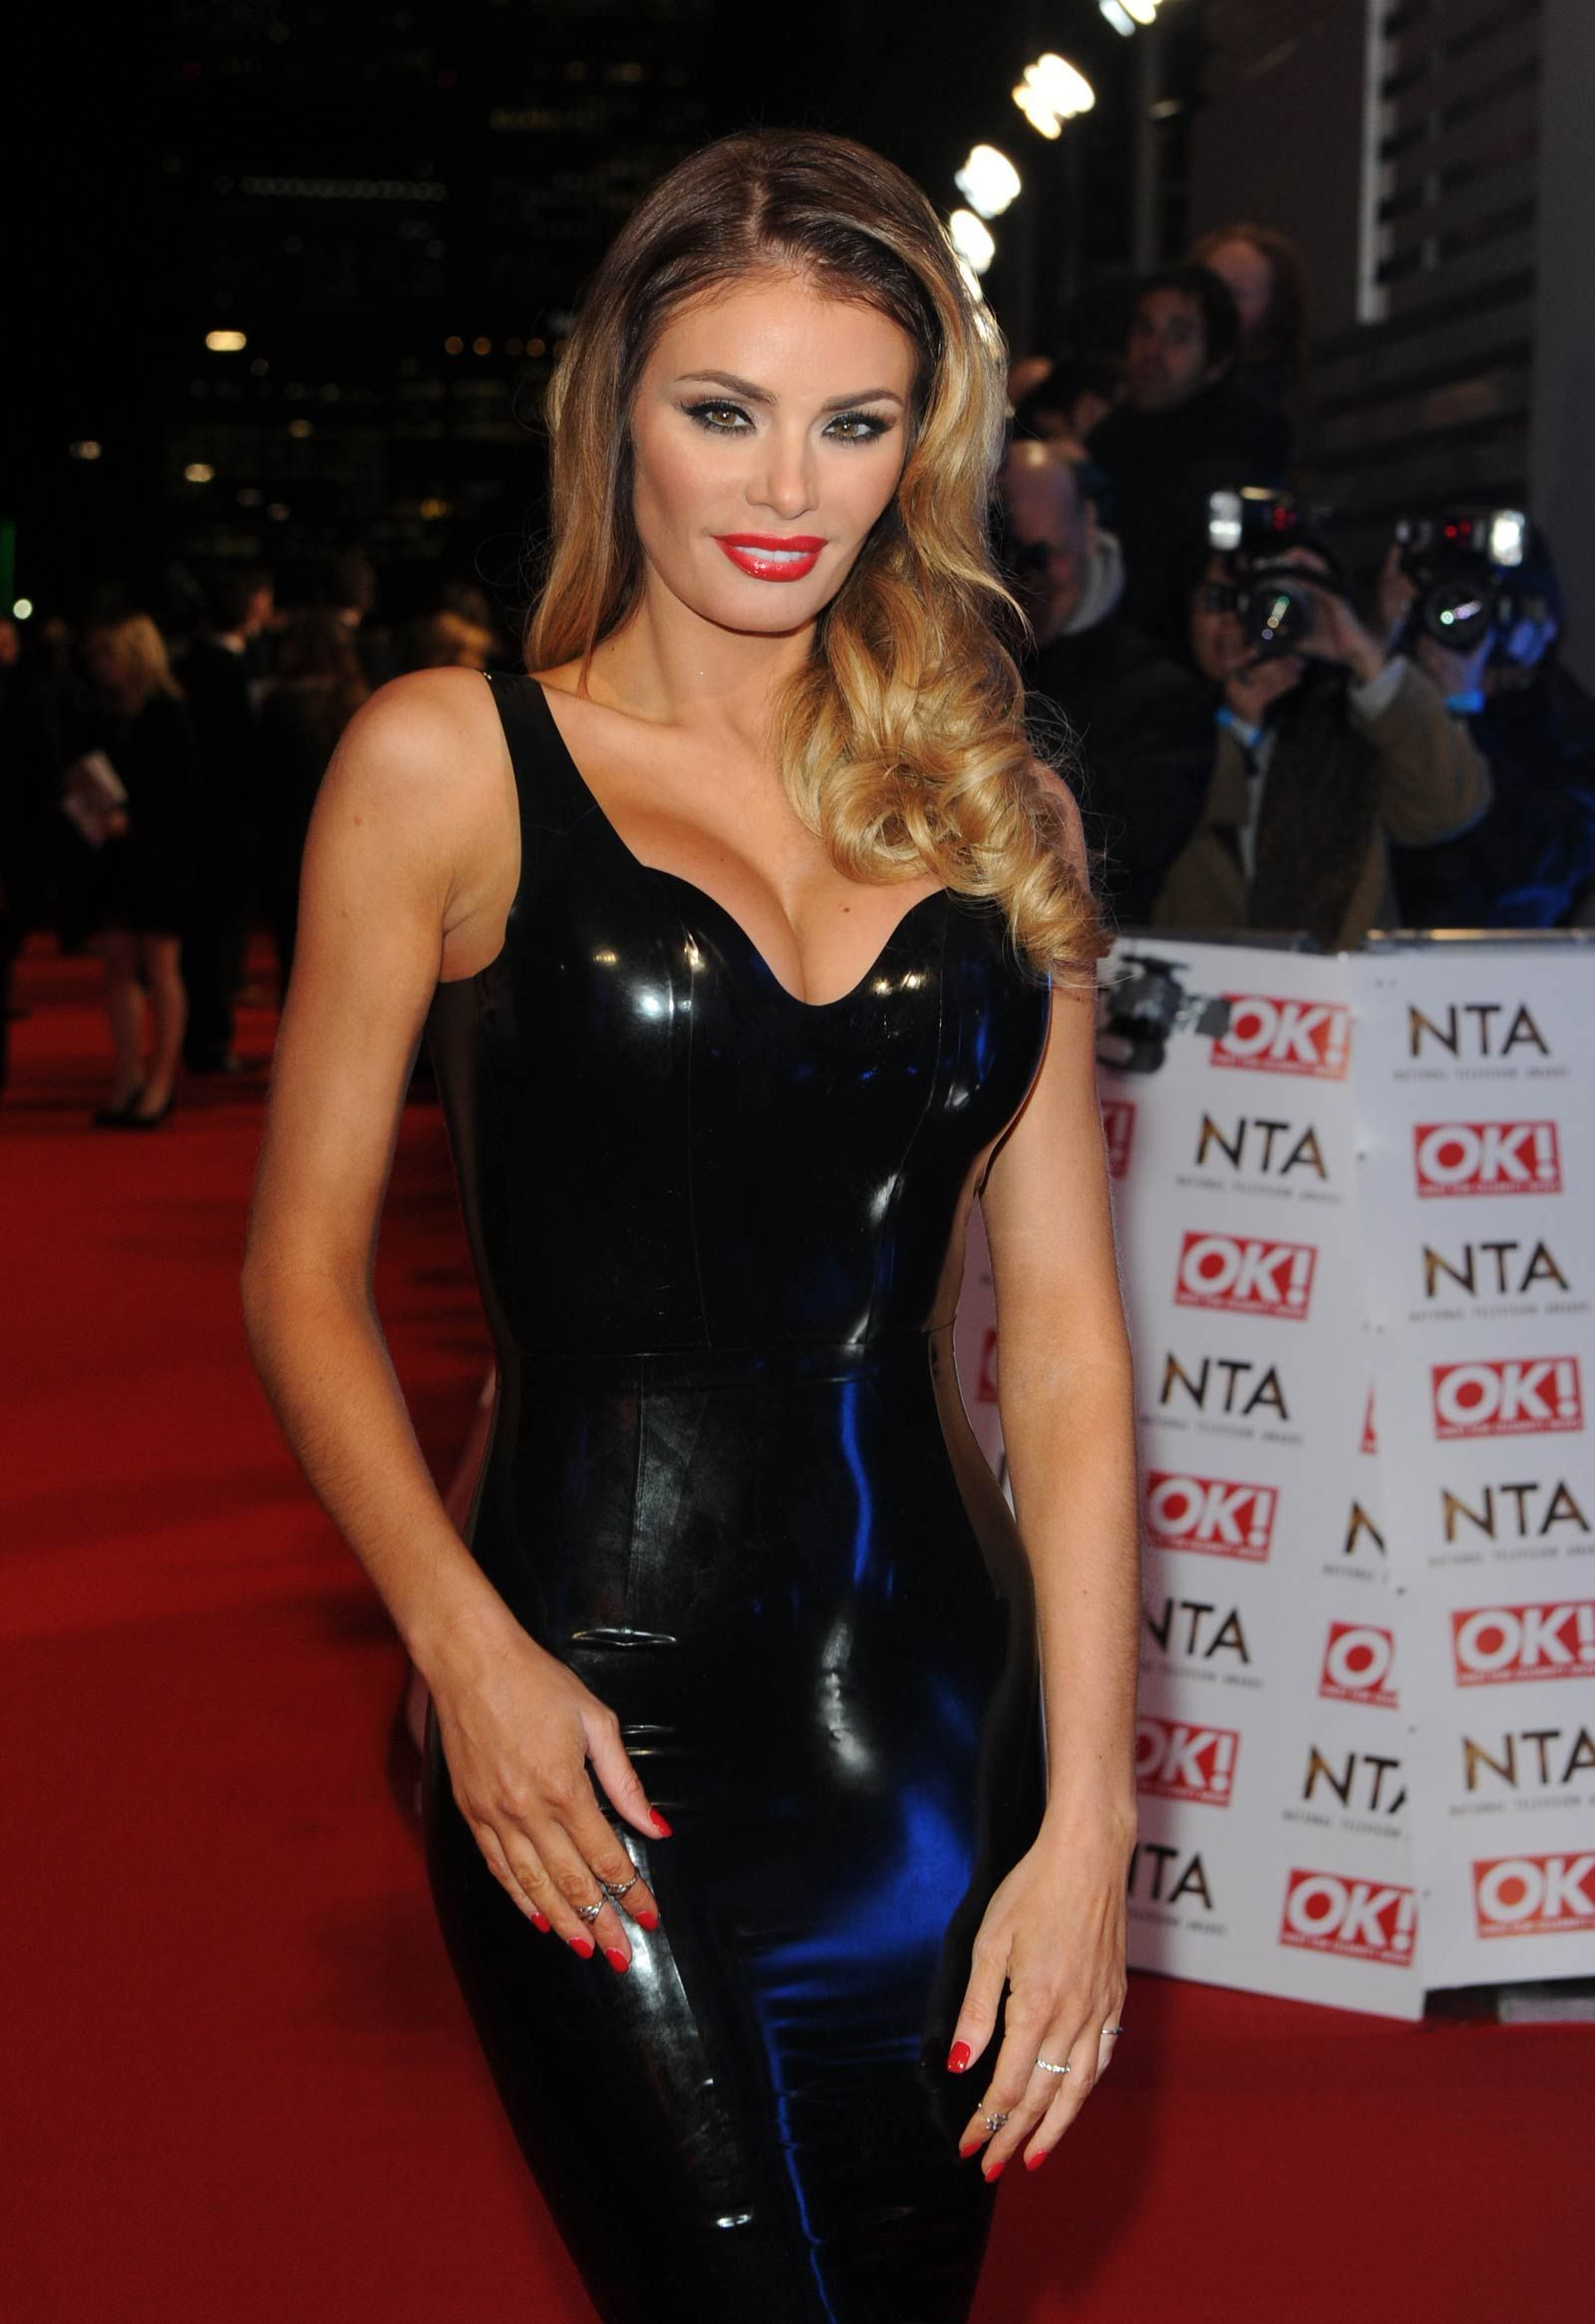 Chloe Sims Nude Photos 22